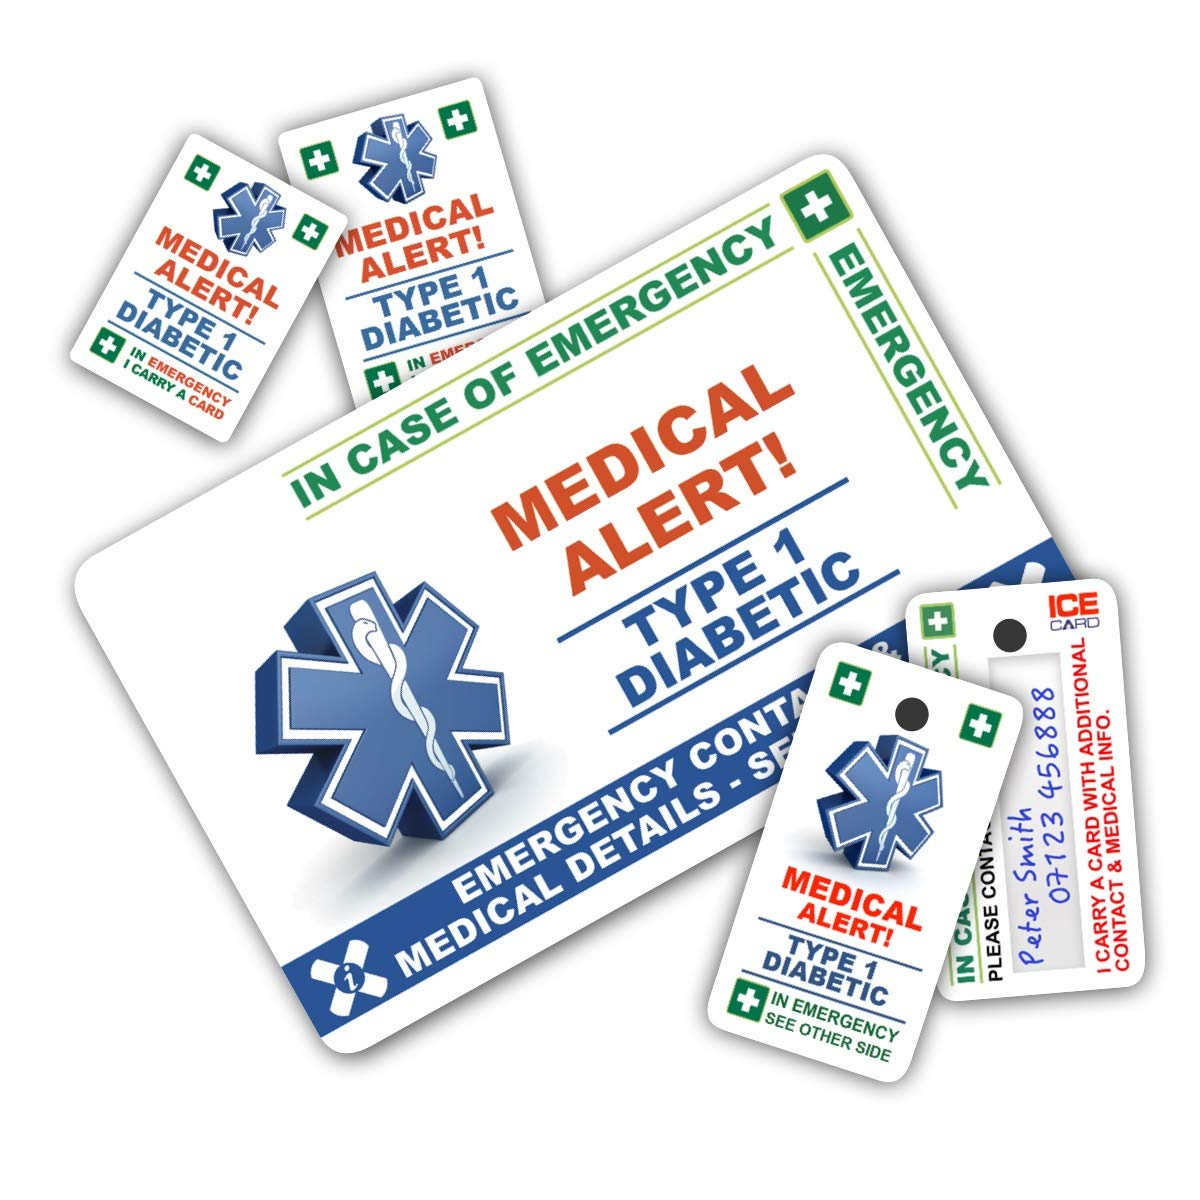 DIABETES In Case of Emergency (I.C.E.) ICE Card Pack with Key Rings & Stickers in TWO versions